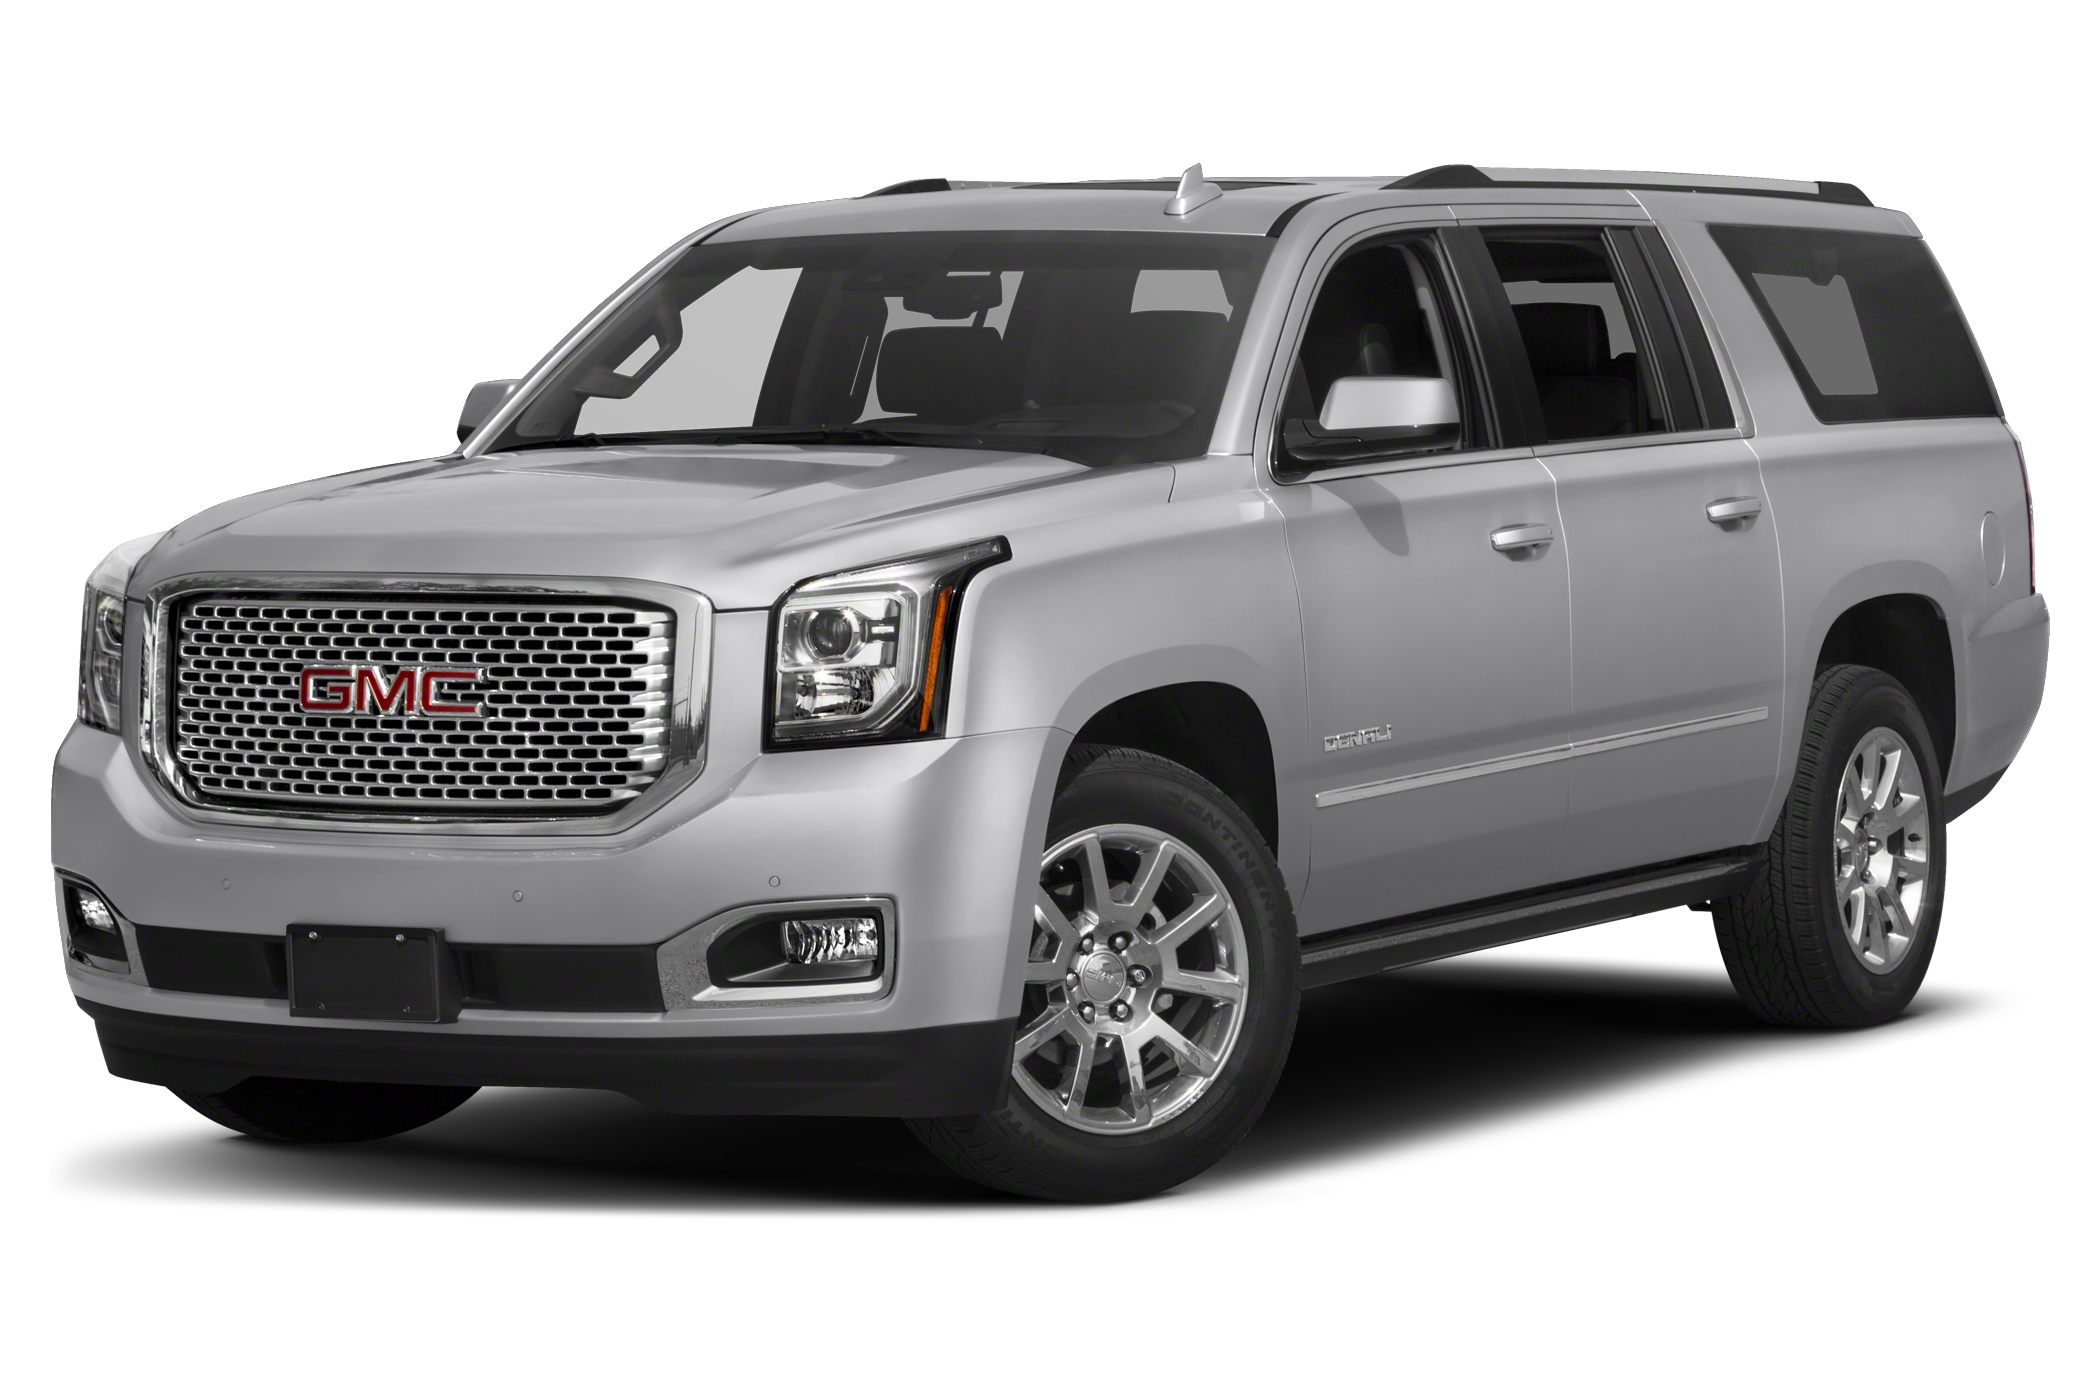 2016 GMC Yukon XL Denali Dont miss out on this 2016 GMC Yukon XL Denali which boasts special com